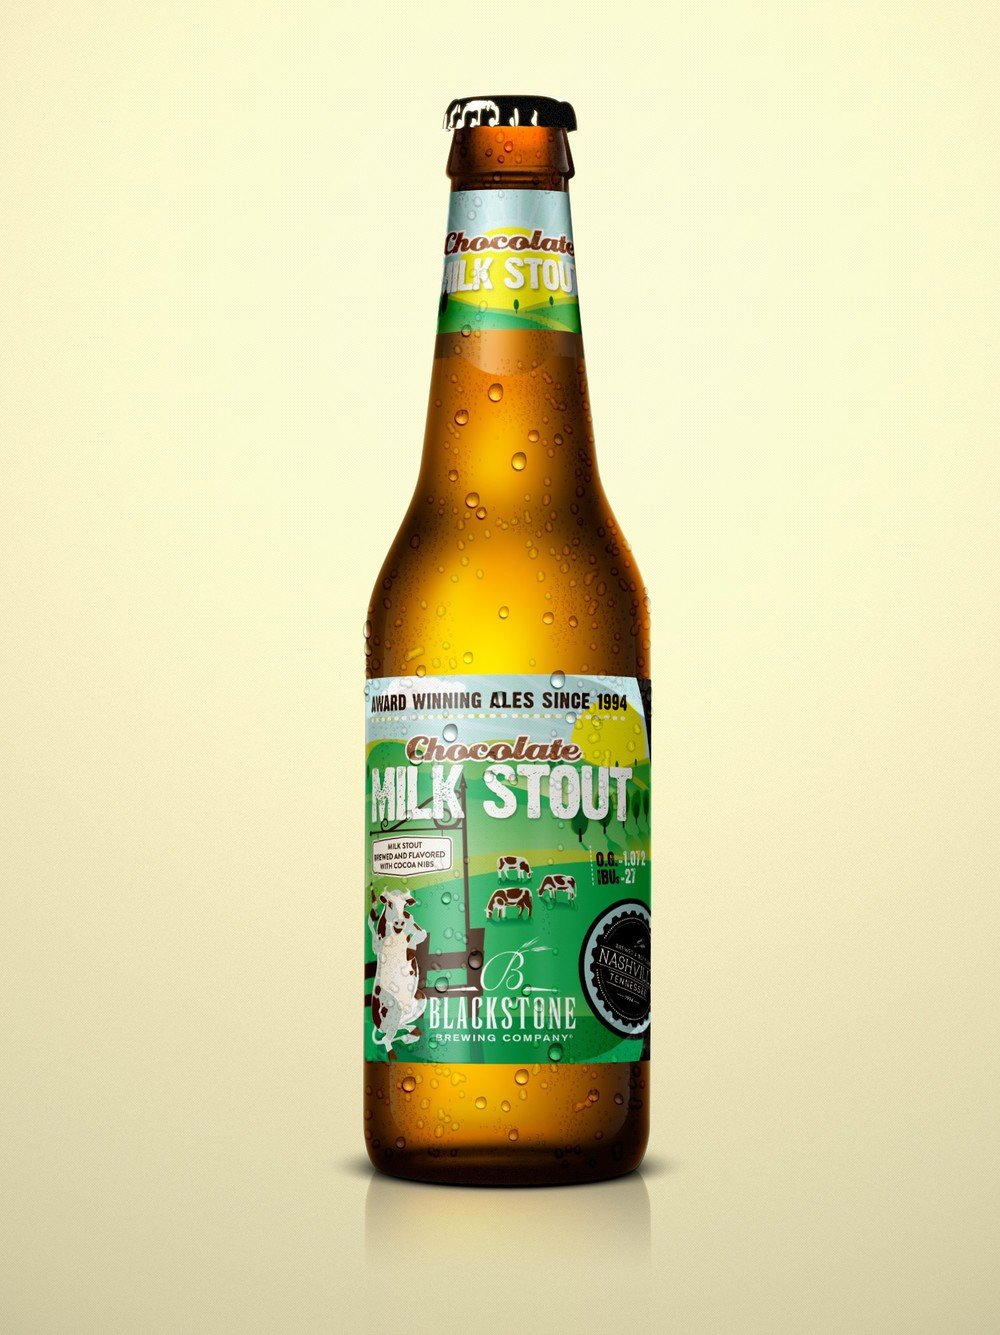 Blackstone Brewing Company Milk Stout Bottle Label